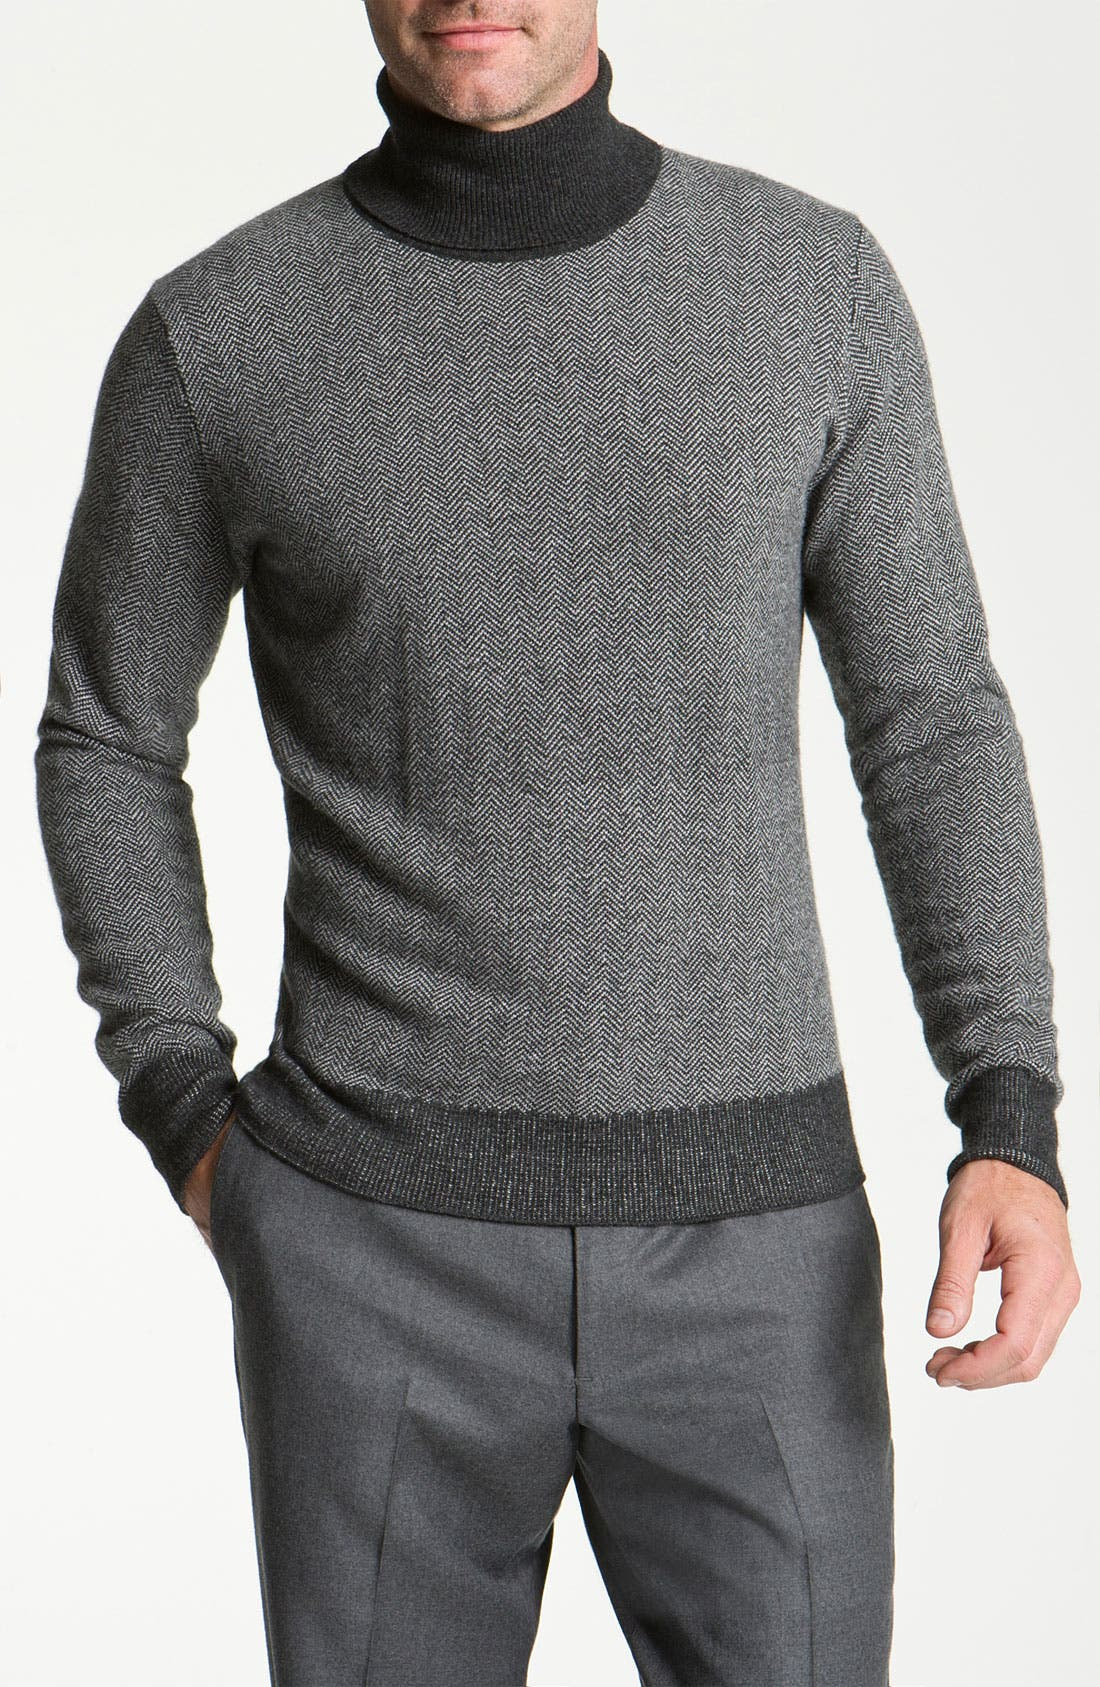 Main Image - Canali Merino Wool & Cashmere Turtleneck Sweater